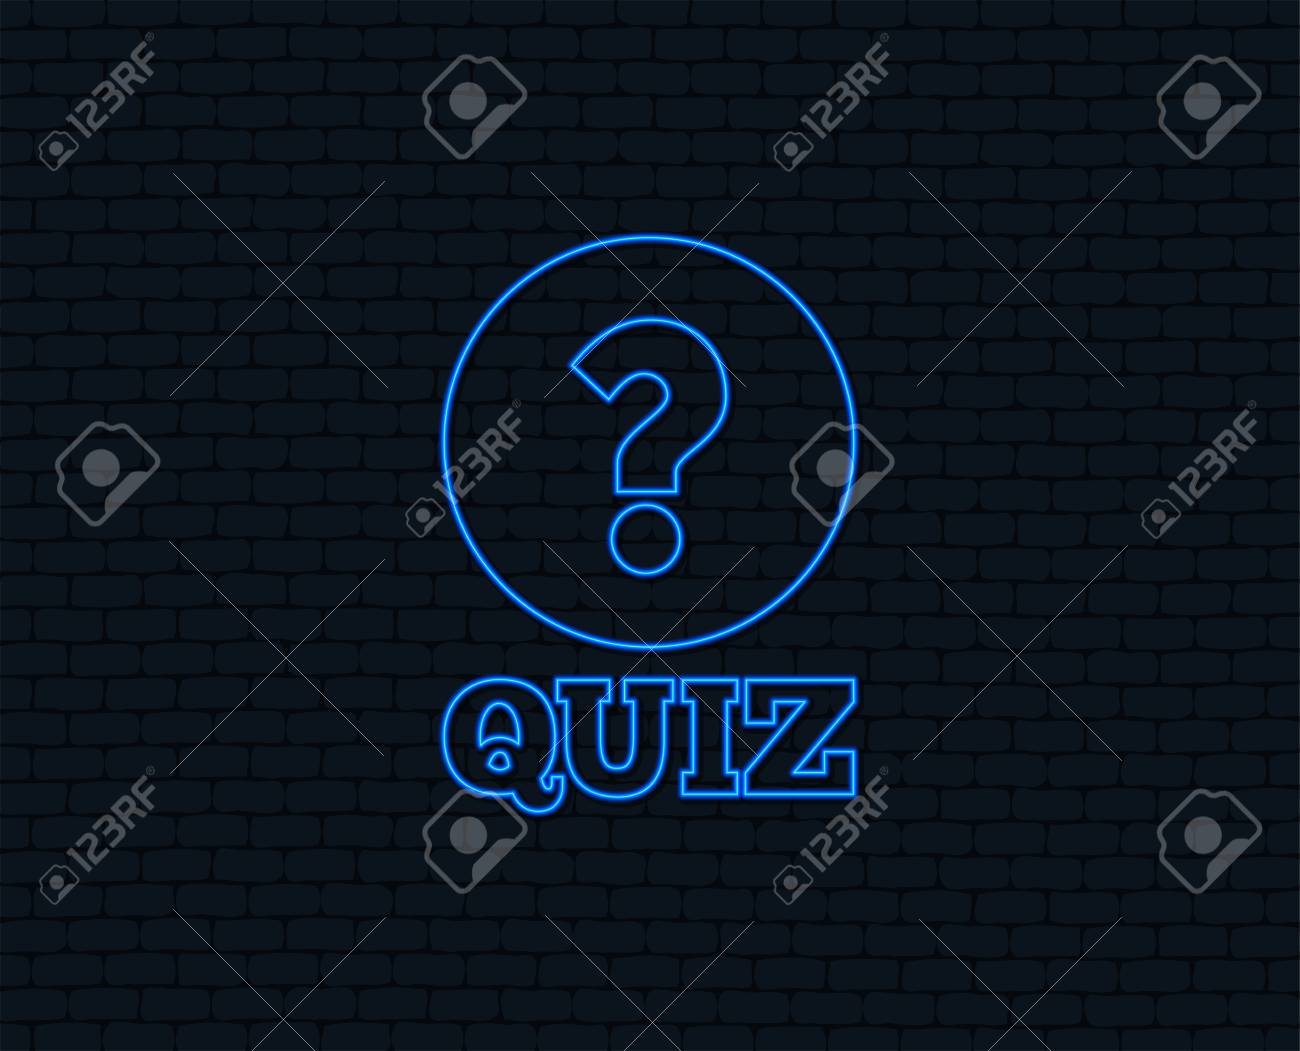 Neon light  Quiz with question mark sign icon  Questions and